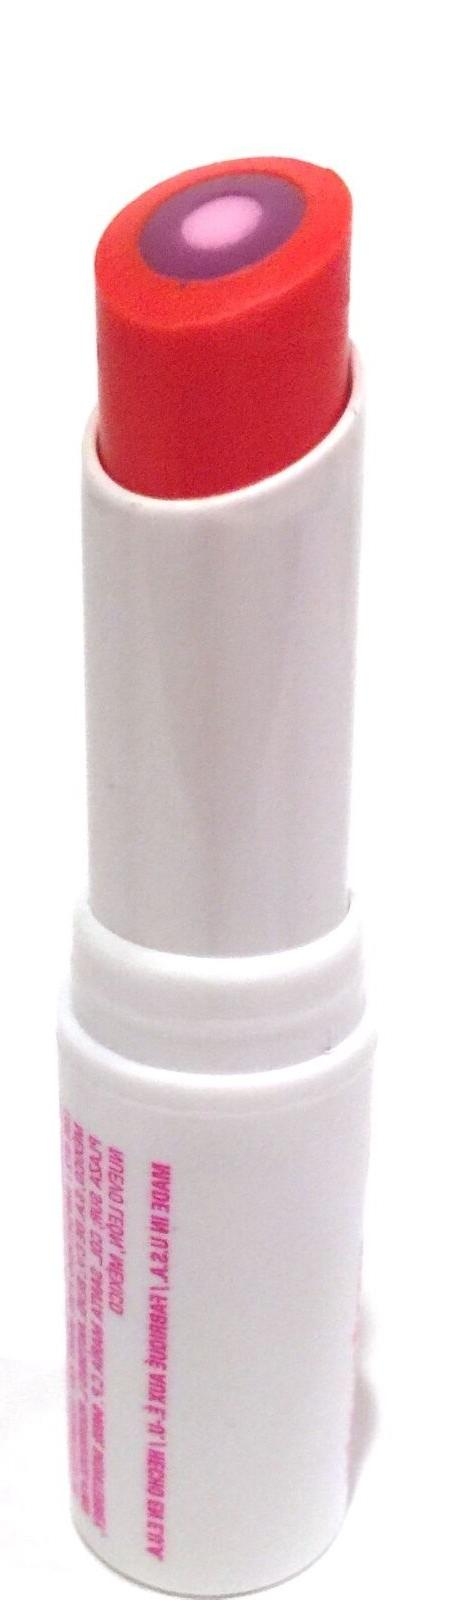 MARY LAYER LIP BALM~AT PLAY~SCENTED~YOU BALM!